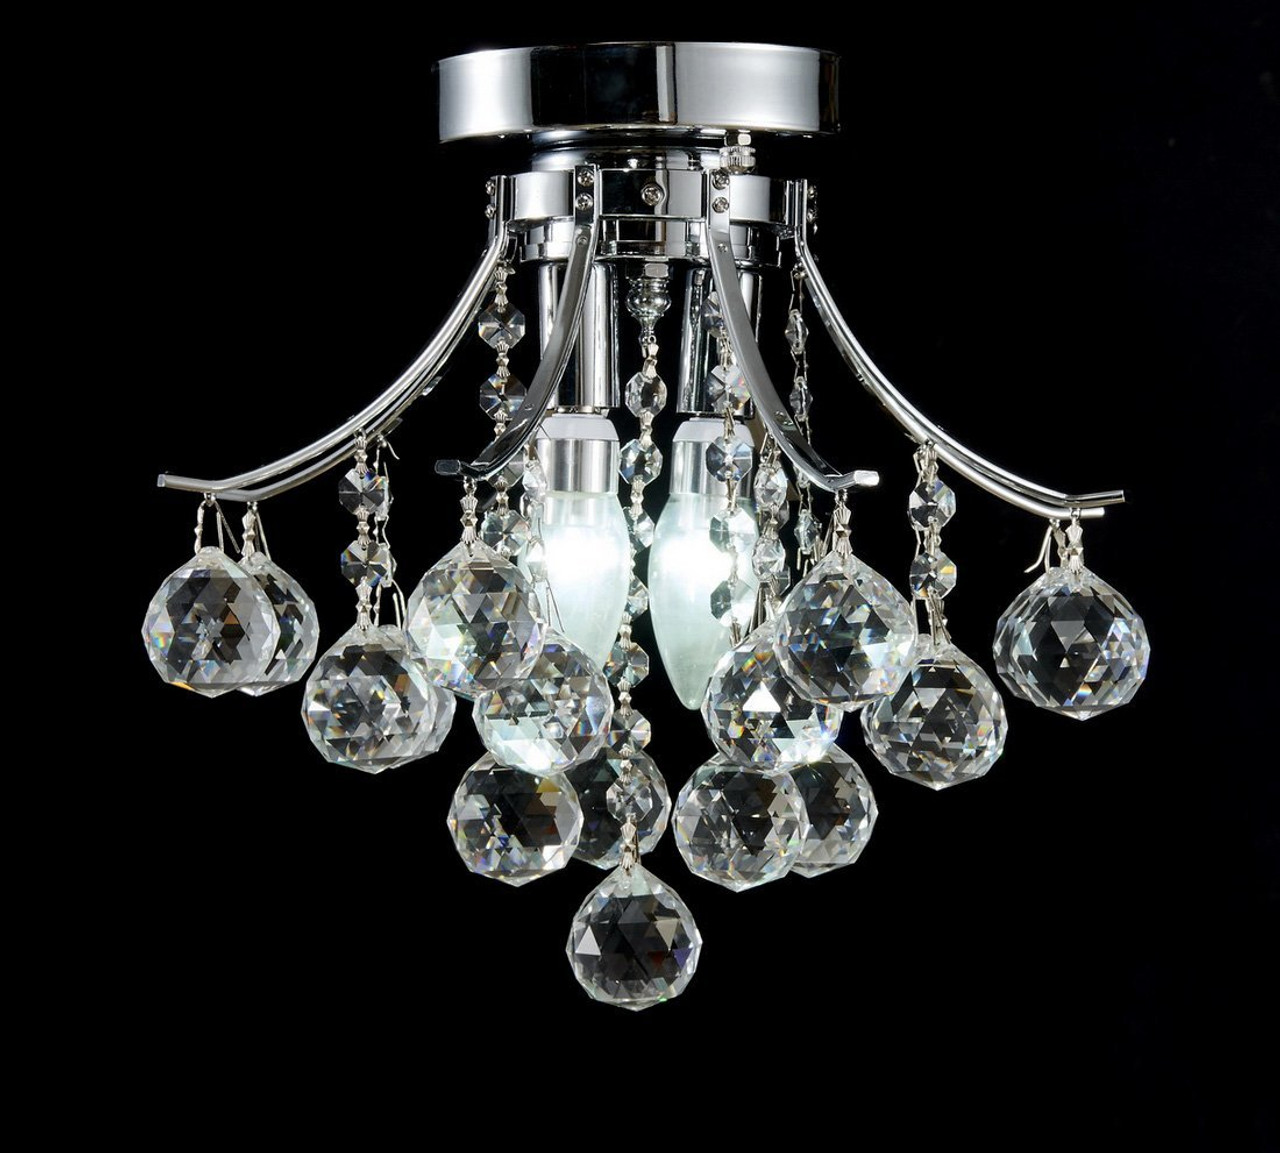 Diamond life modern style 2 light chrome finish crystal chandelier diamond life modern style 2 light chrome finish crystal chandelier flush mount ceiling light fixture aloadofball Image collections